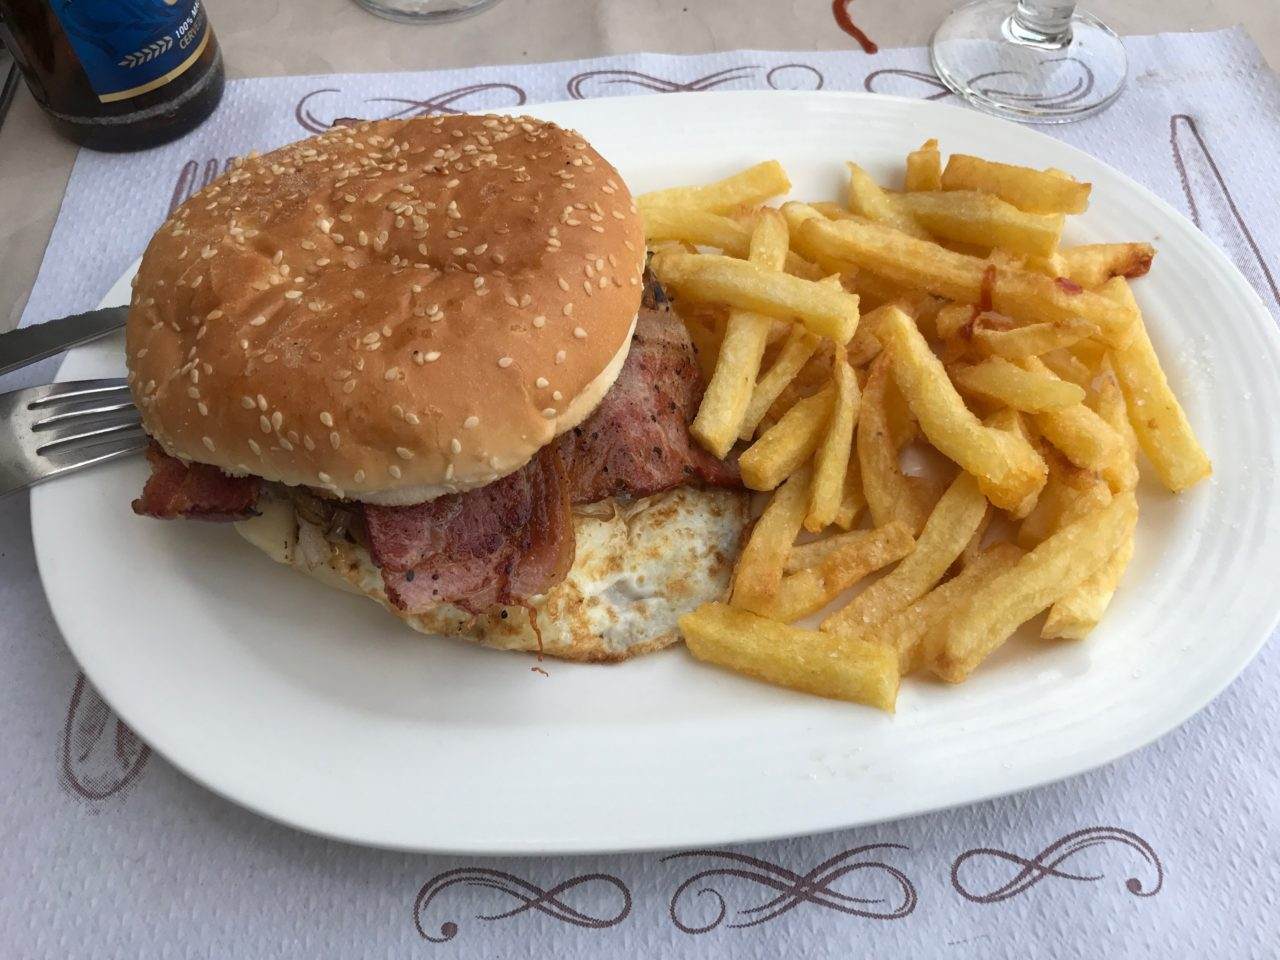 A Hamburger Of Beef With Bacon Slices And Fried Eggs And Salted French Fries On A White Plate